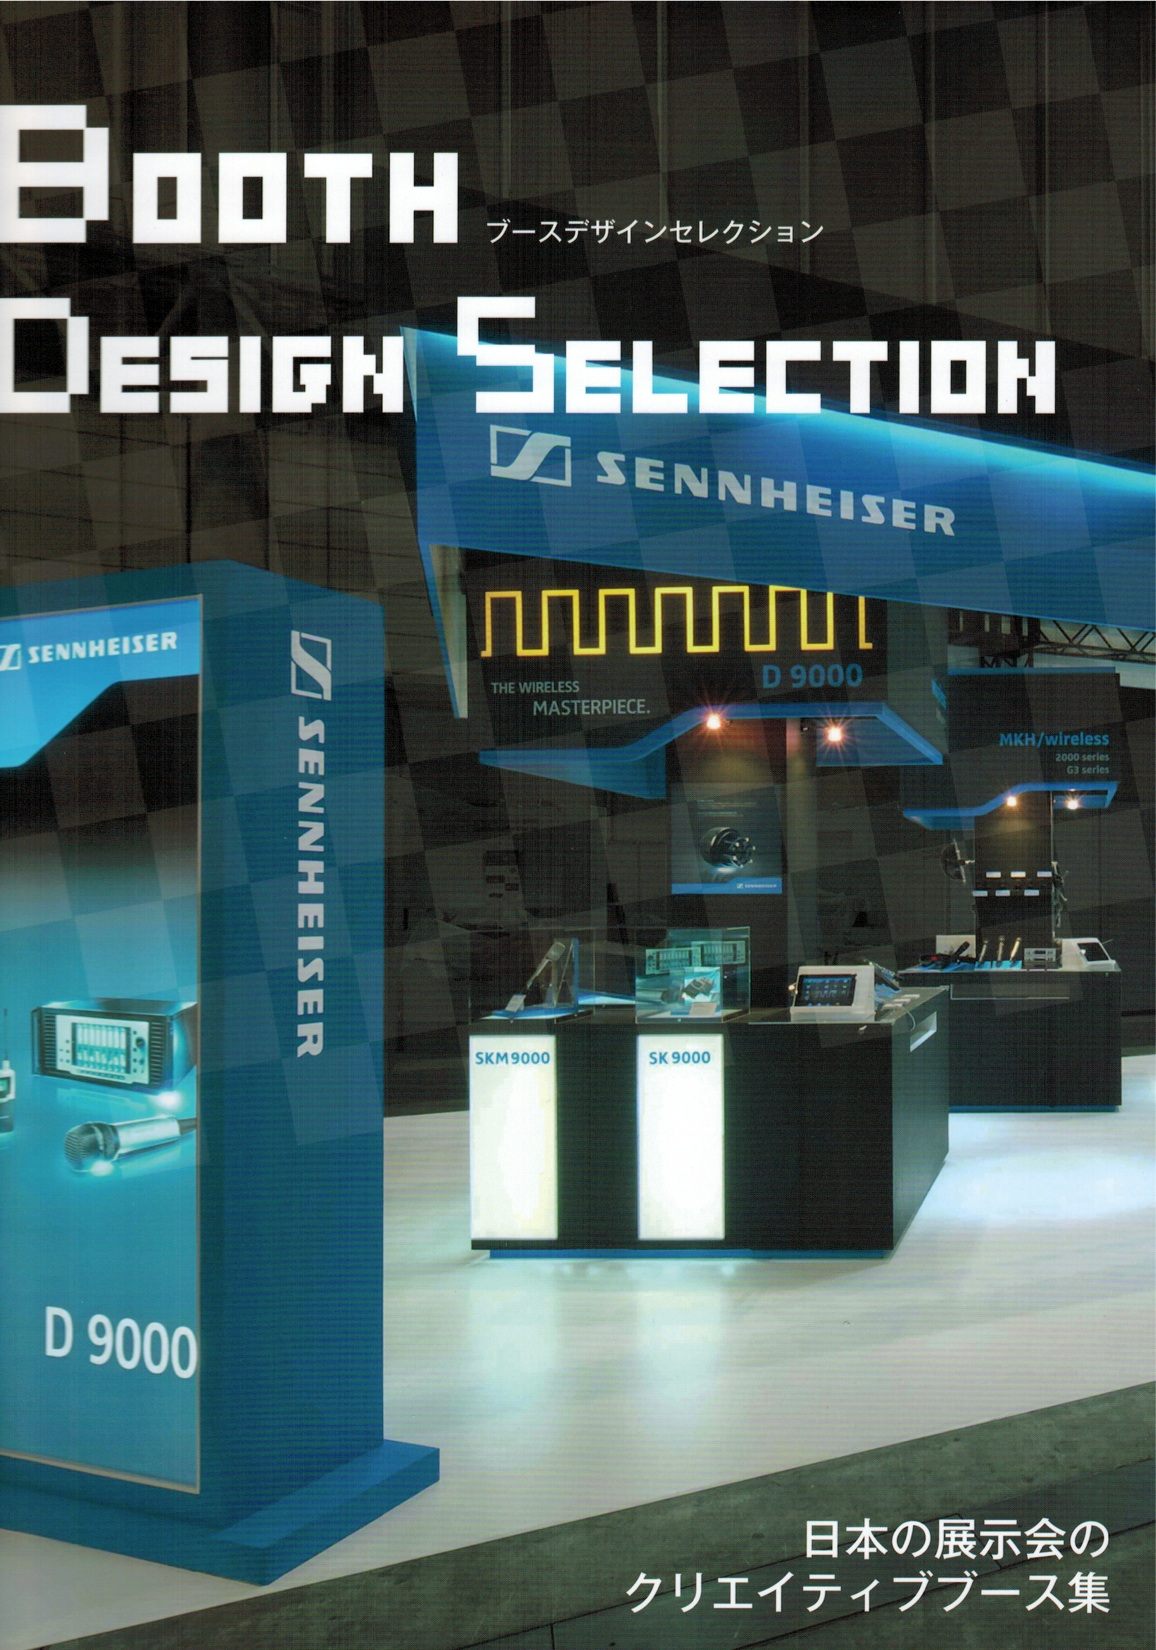 BOOTH DESIGN SELECTION